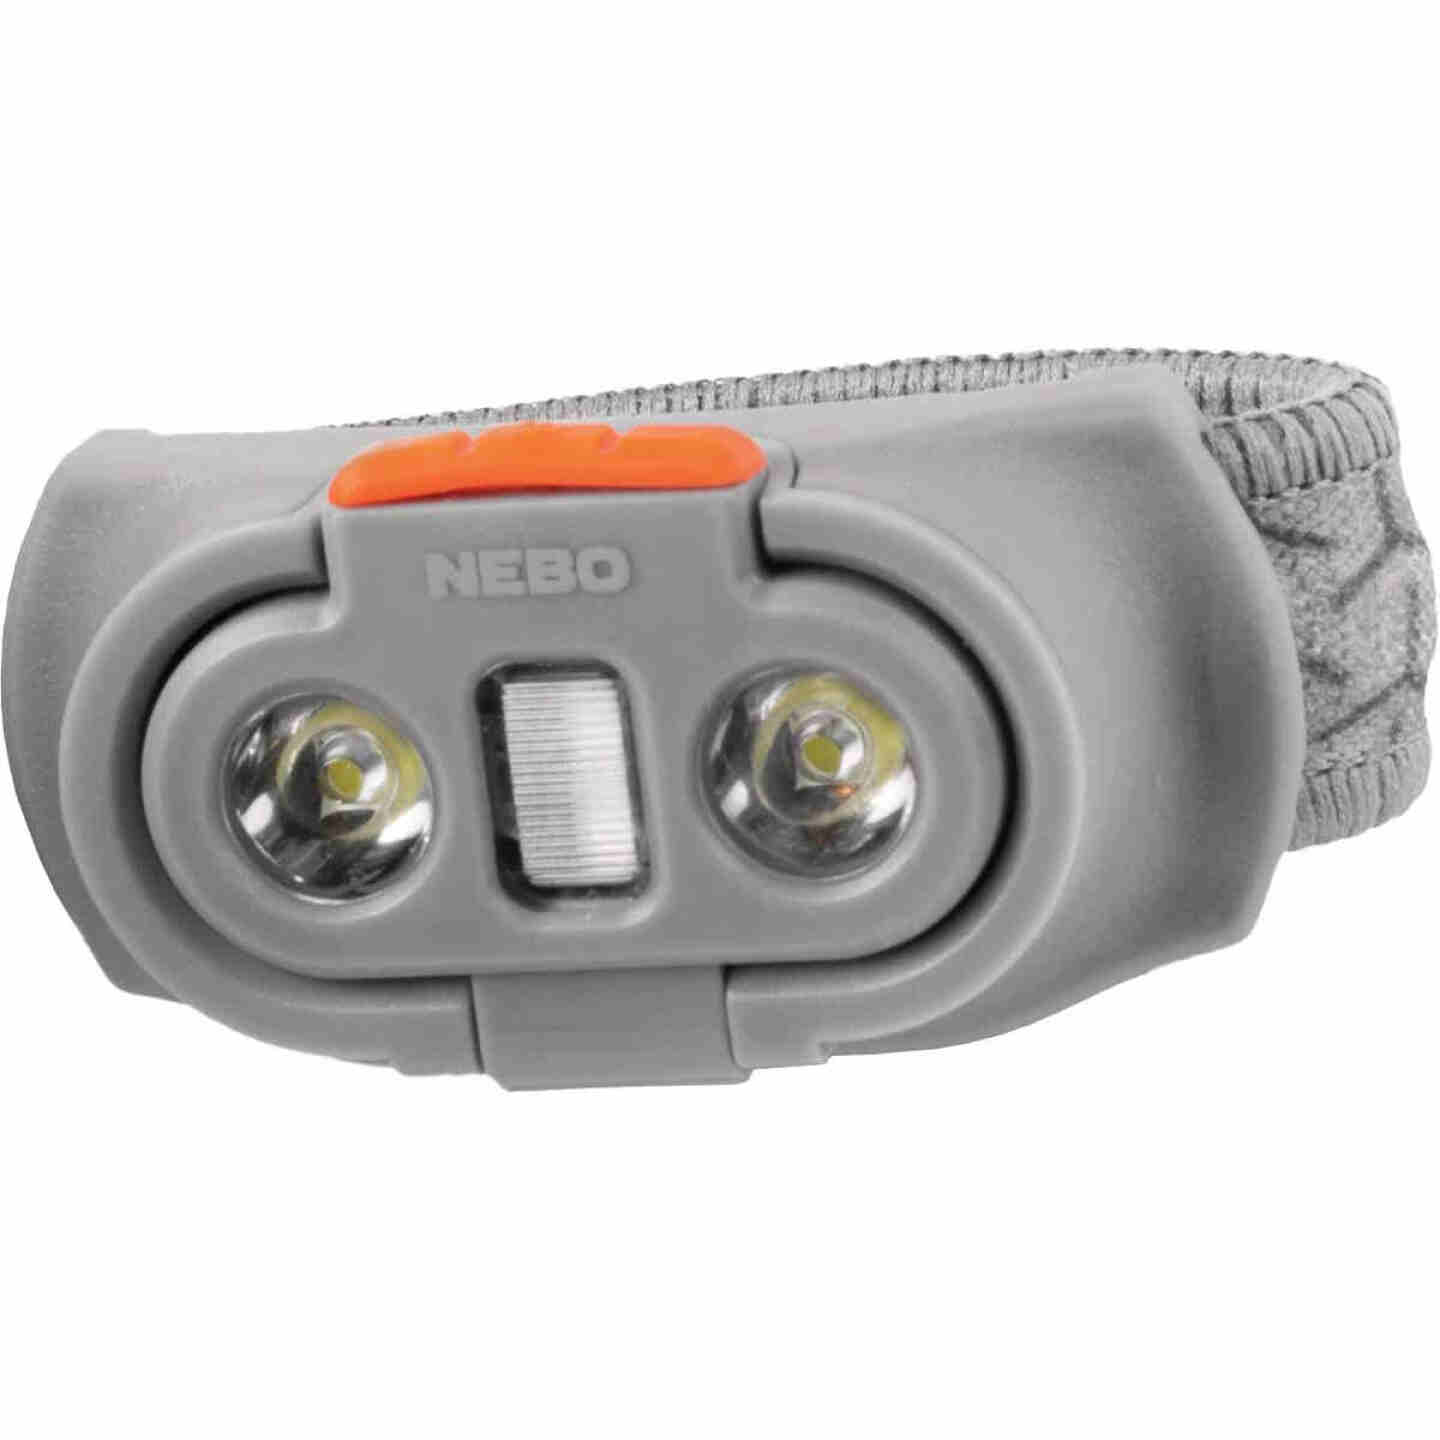 Nebo Einstein 500 Lm. LED 3AAA Headlamp Image 4